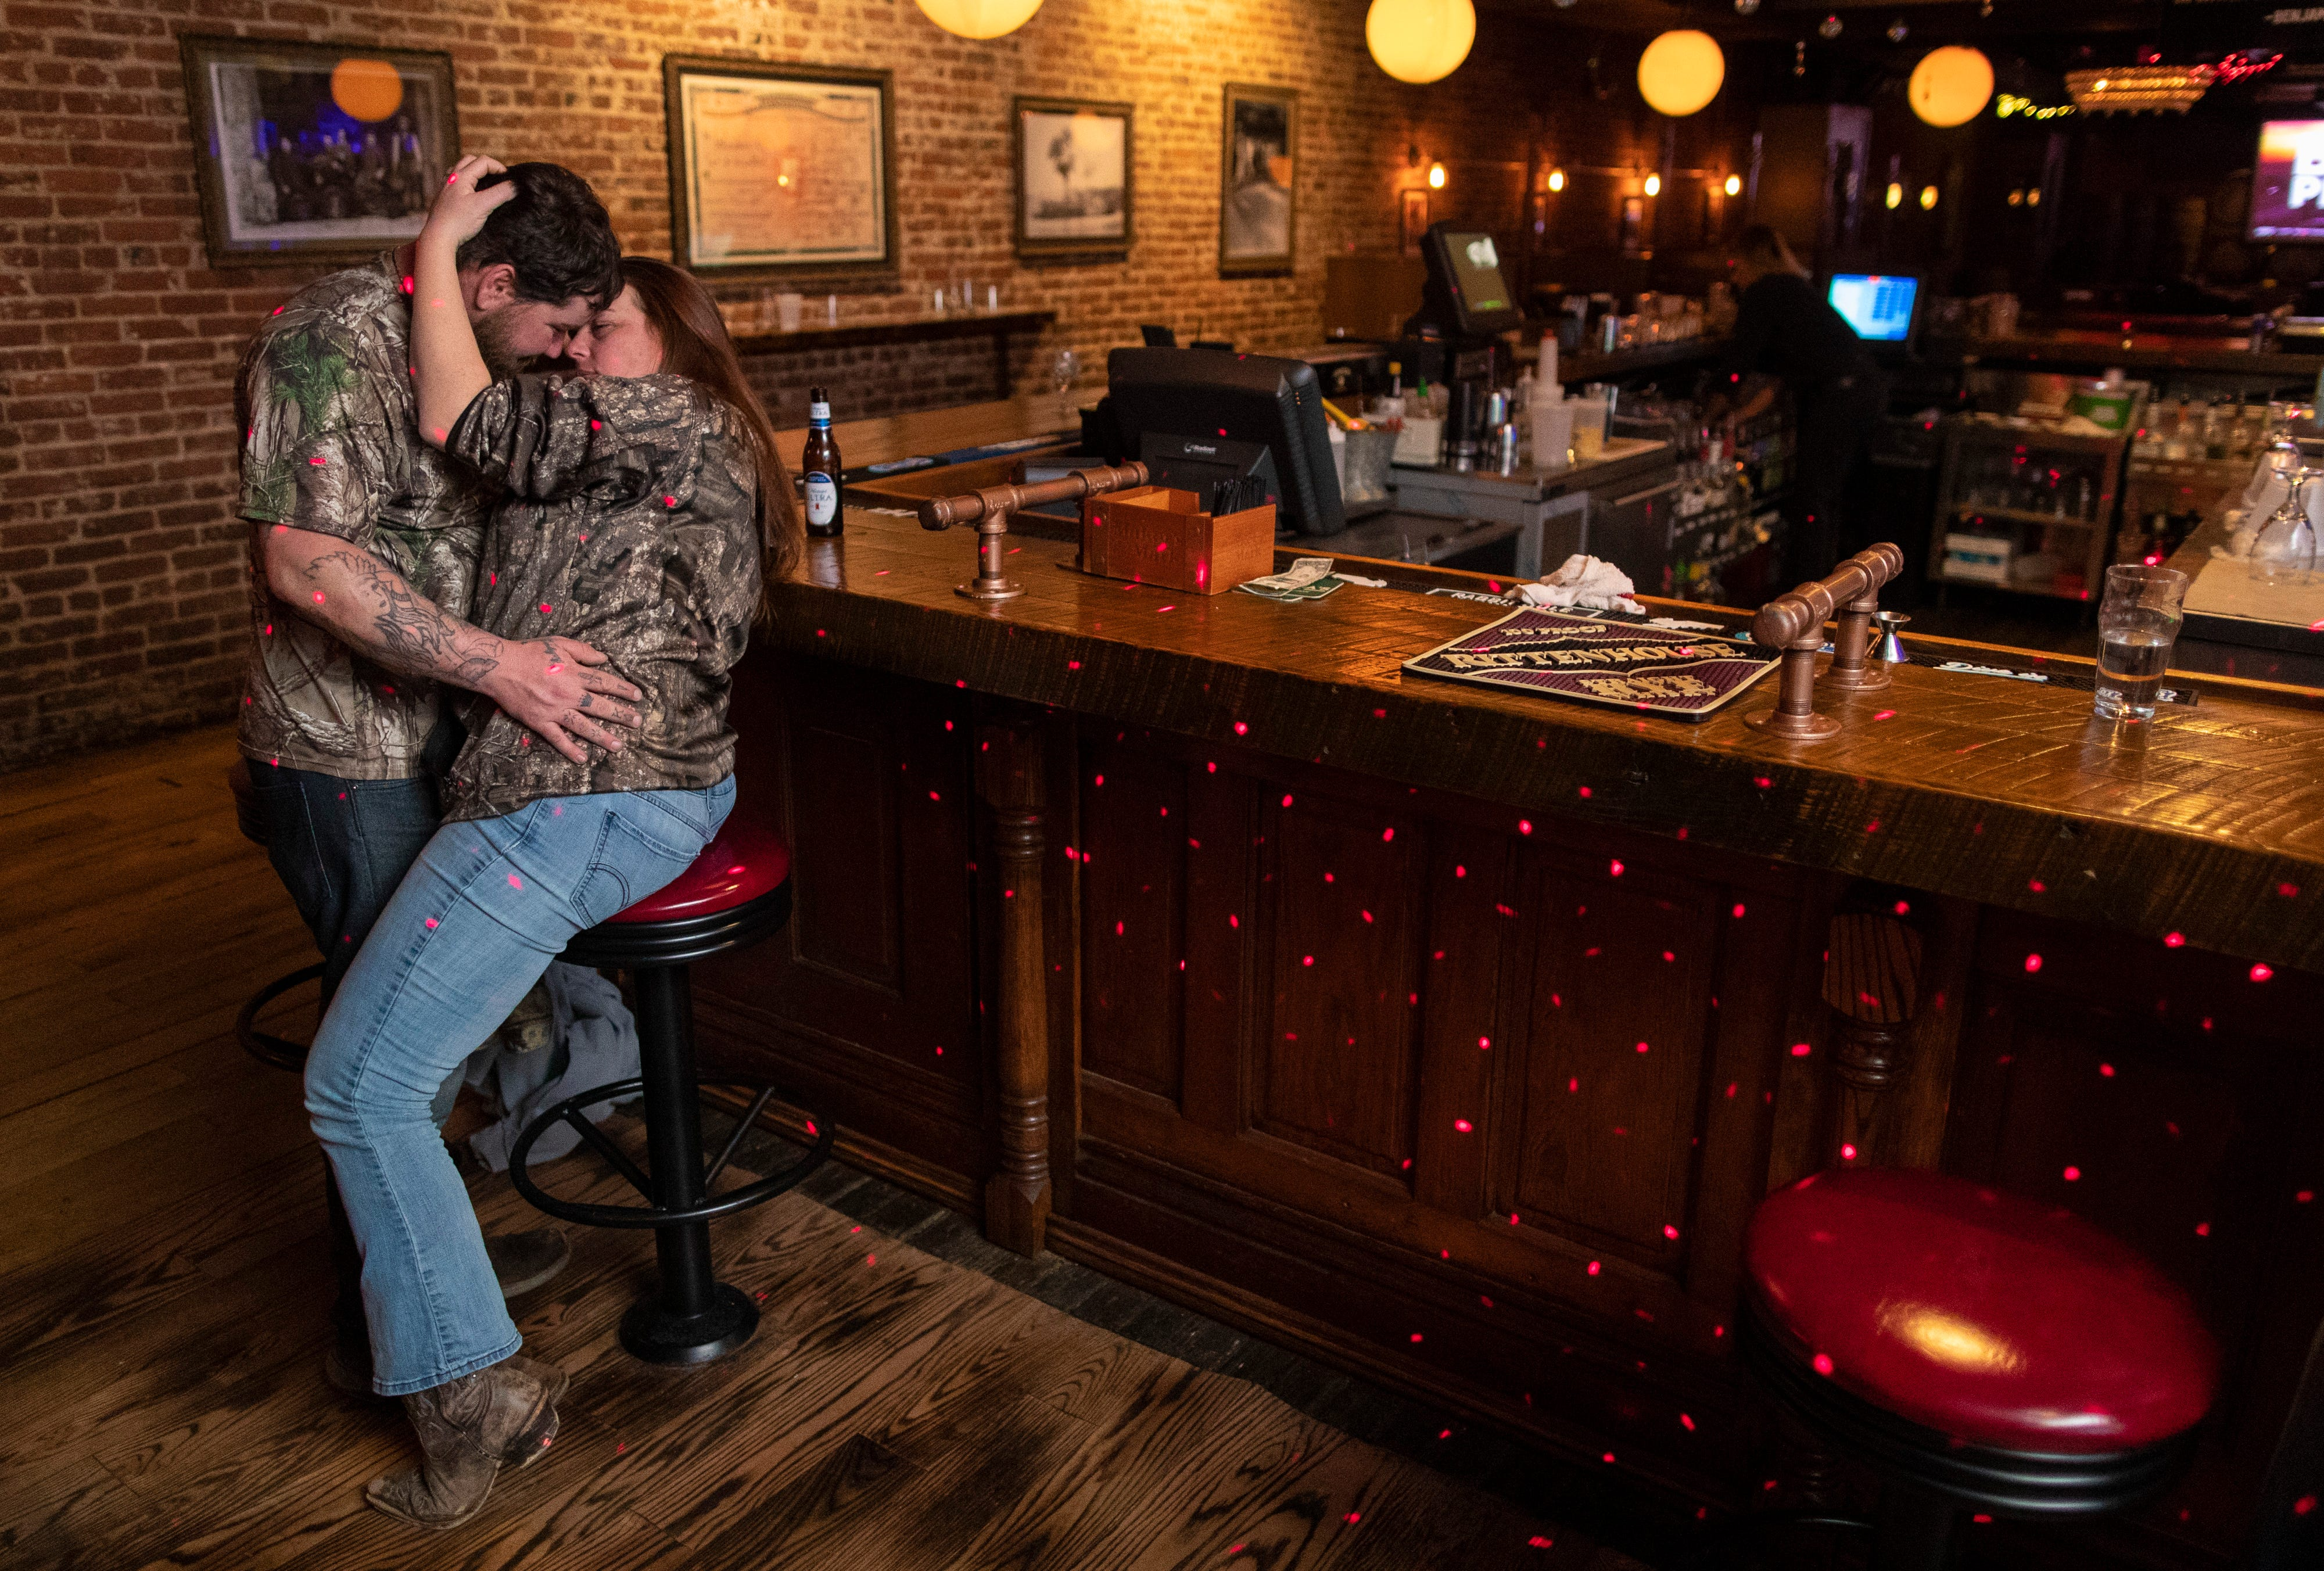 """Andrew Williams, left, and Amber Ritter pull each other close after a late night for karaoke at O'Shea's in downtown Louisville on Jan. 26, 2020. """"I've come to be good friends with DJ Michael Lawson,"""" Williams said. """"I stumbled in here one night and I heard some off-key music and I've been coming here ever since."""""""